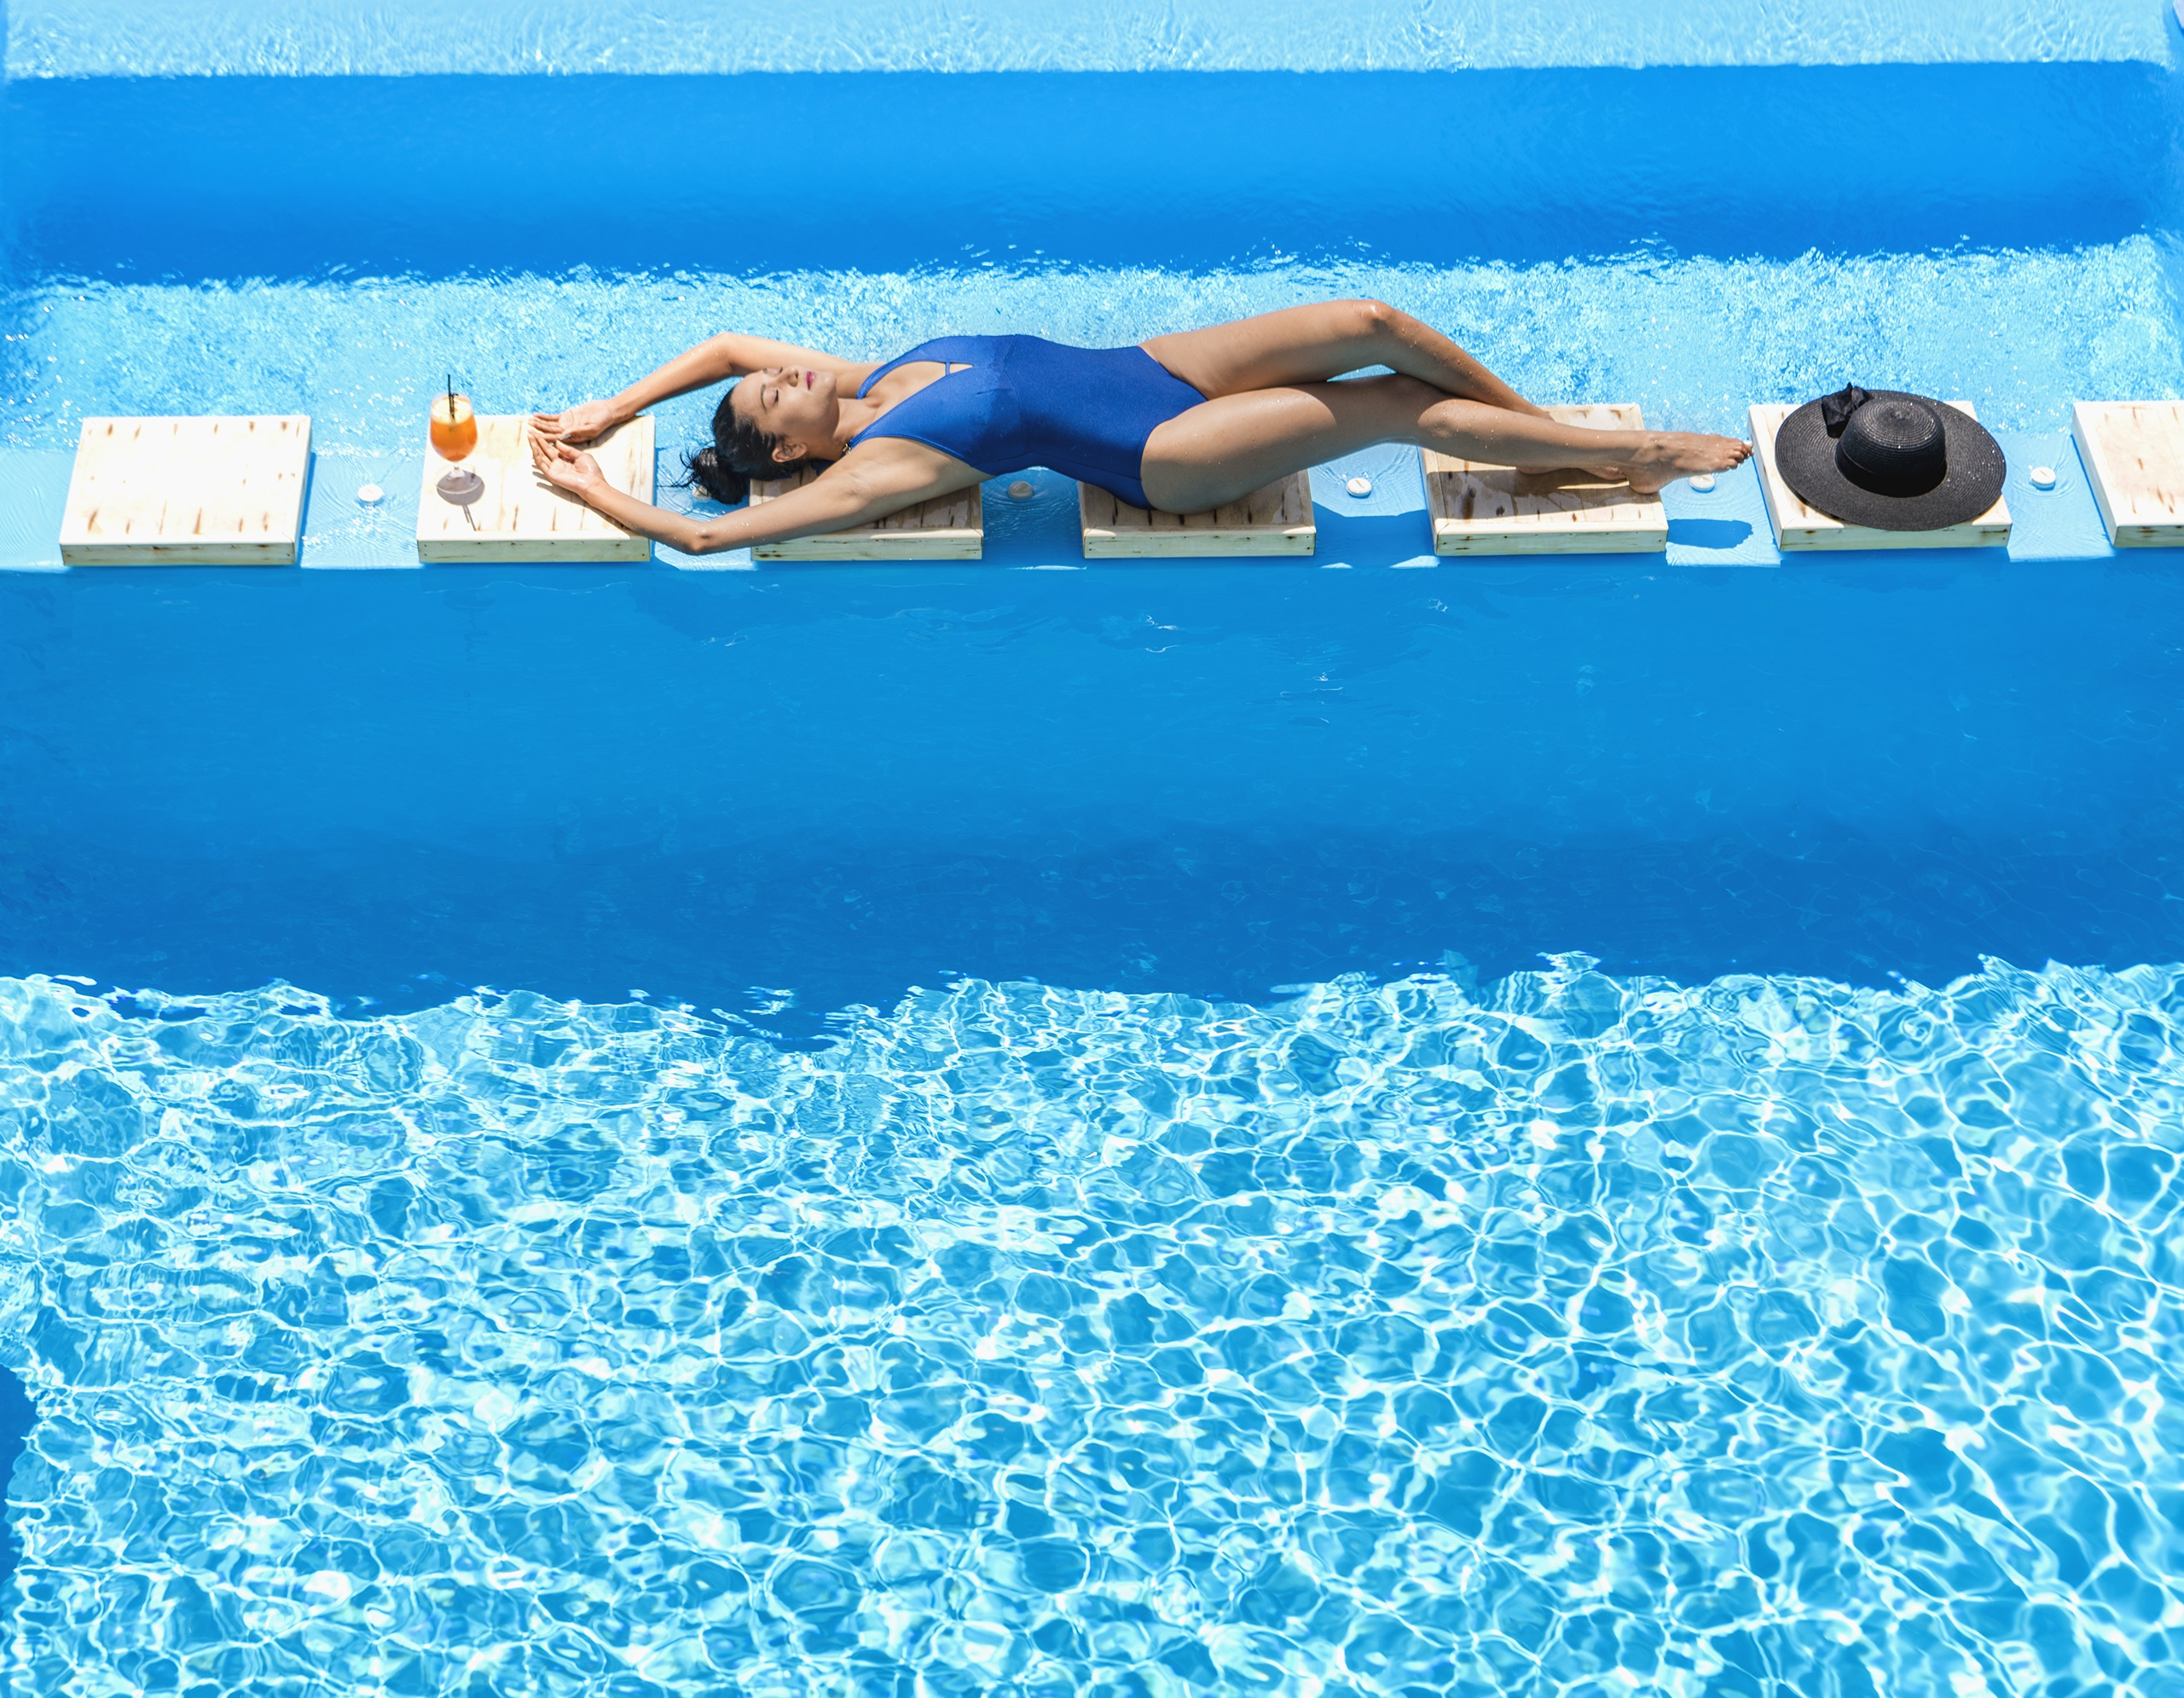 Best Ways to Spend a Day Sun Bathing